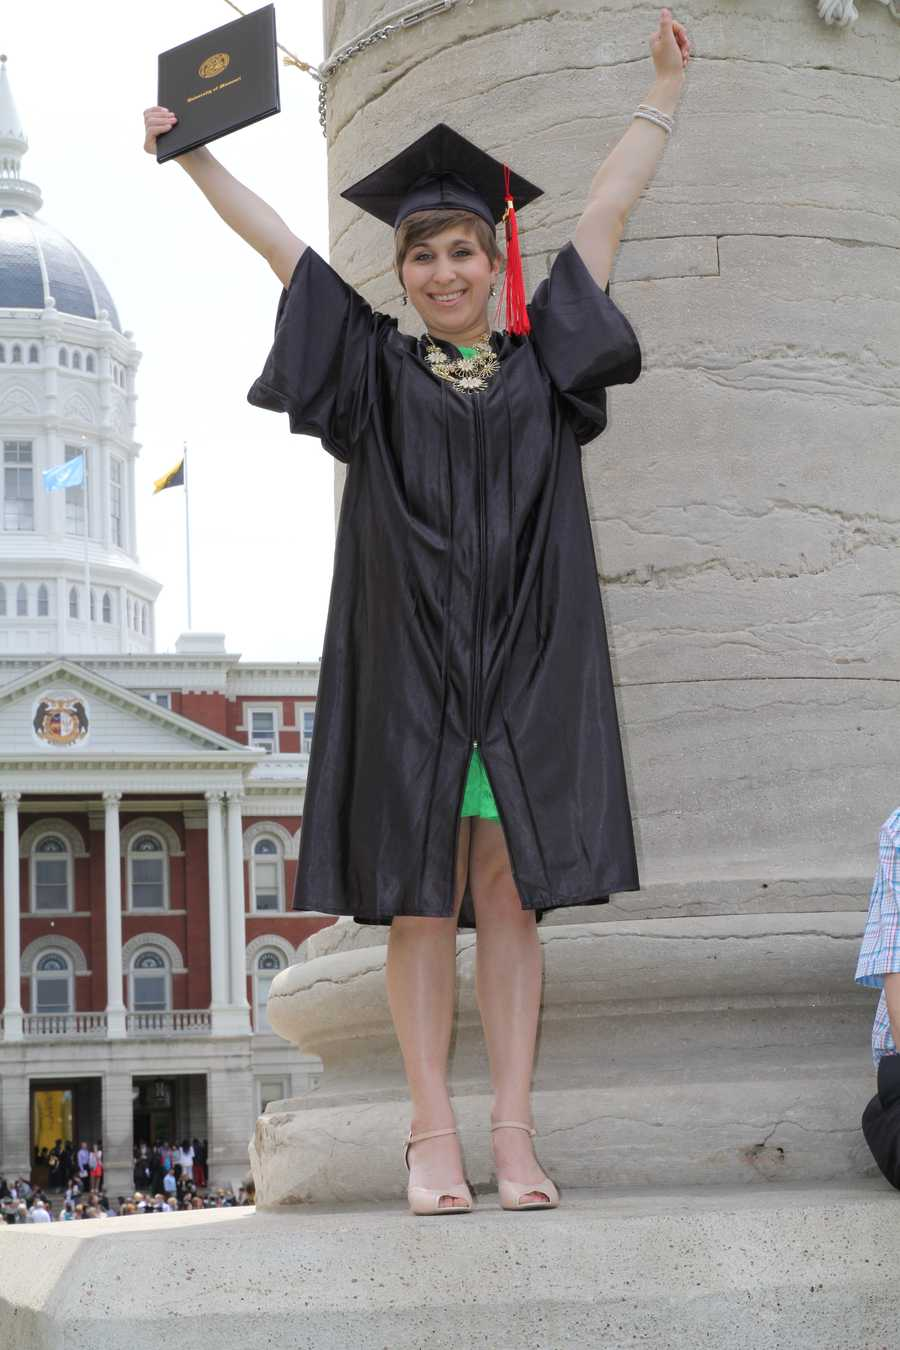 I graduated from the Missouri School of Journalism. I am a HUGE Mizzou fan… I even named my dog Truman, after our mascot!